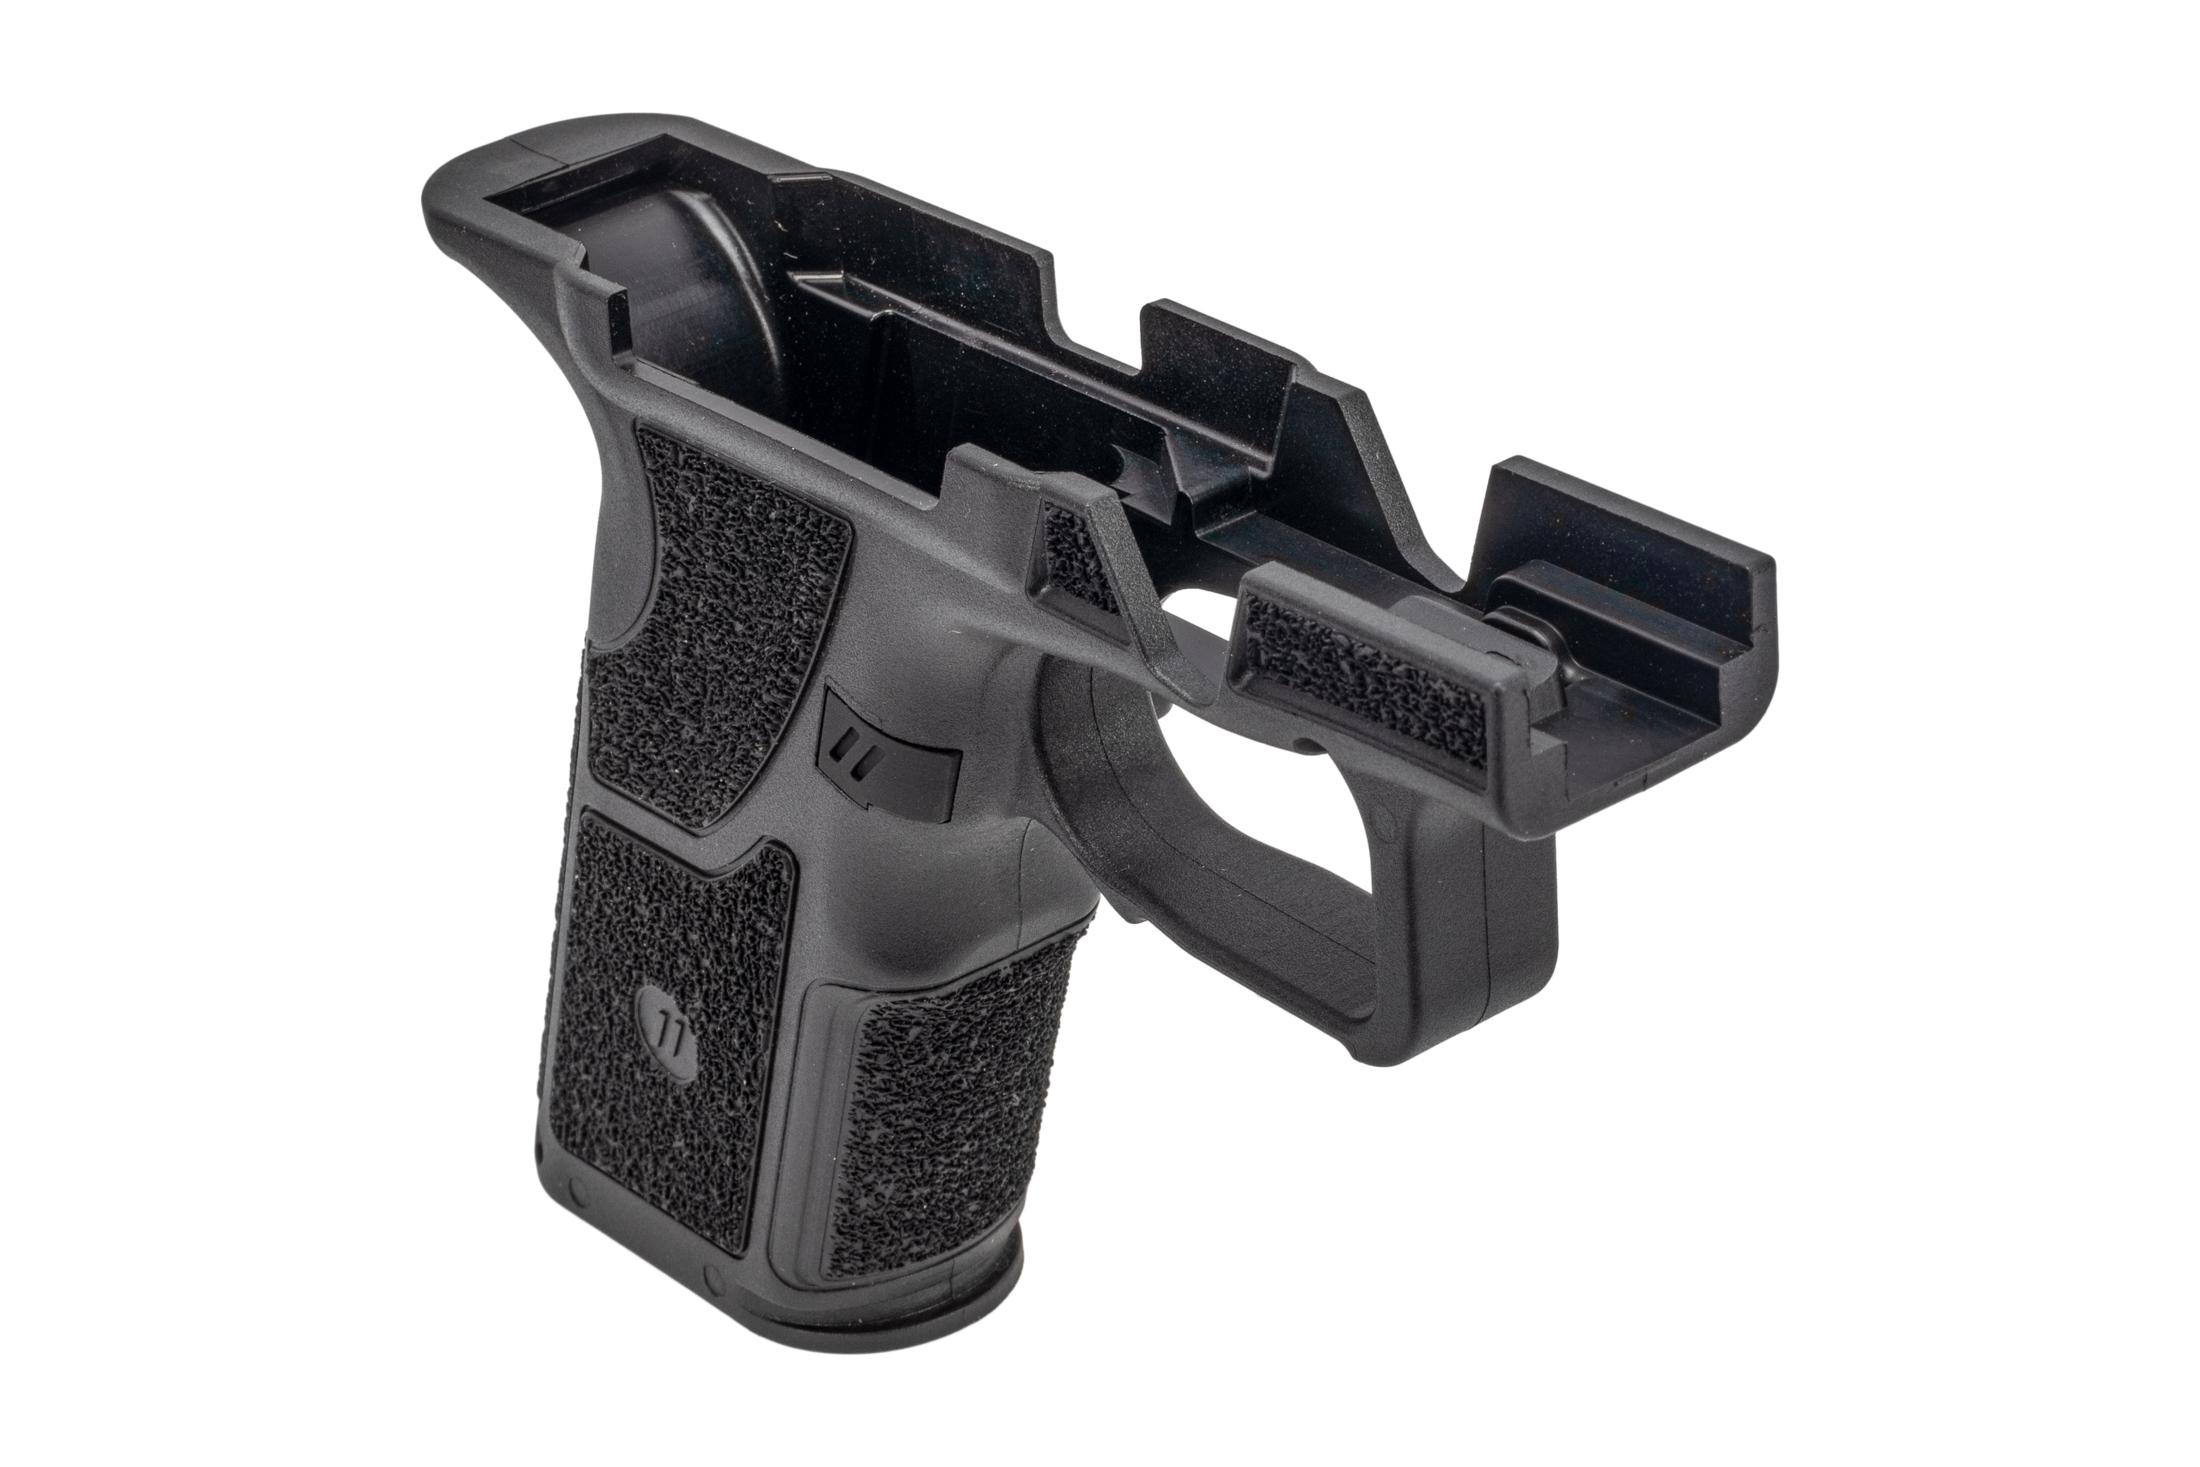 Zev Tech OZ9 Grip Module is designed for full size G17 magazines